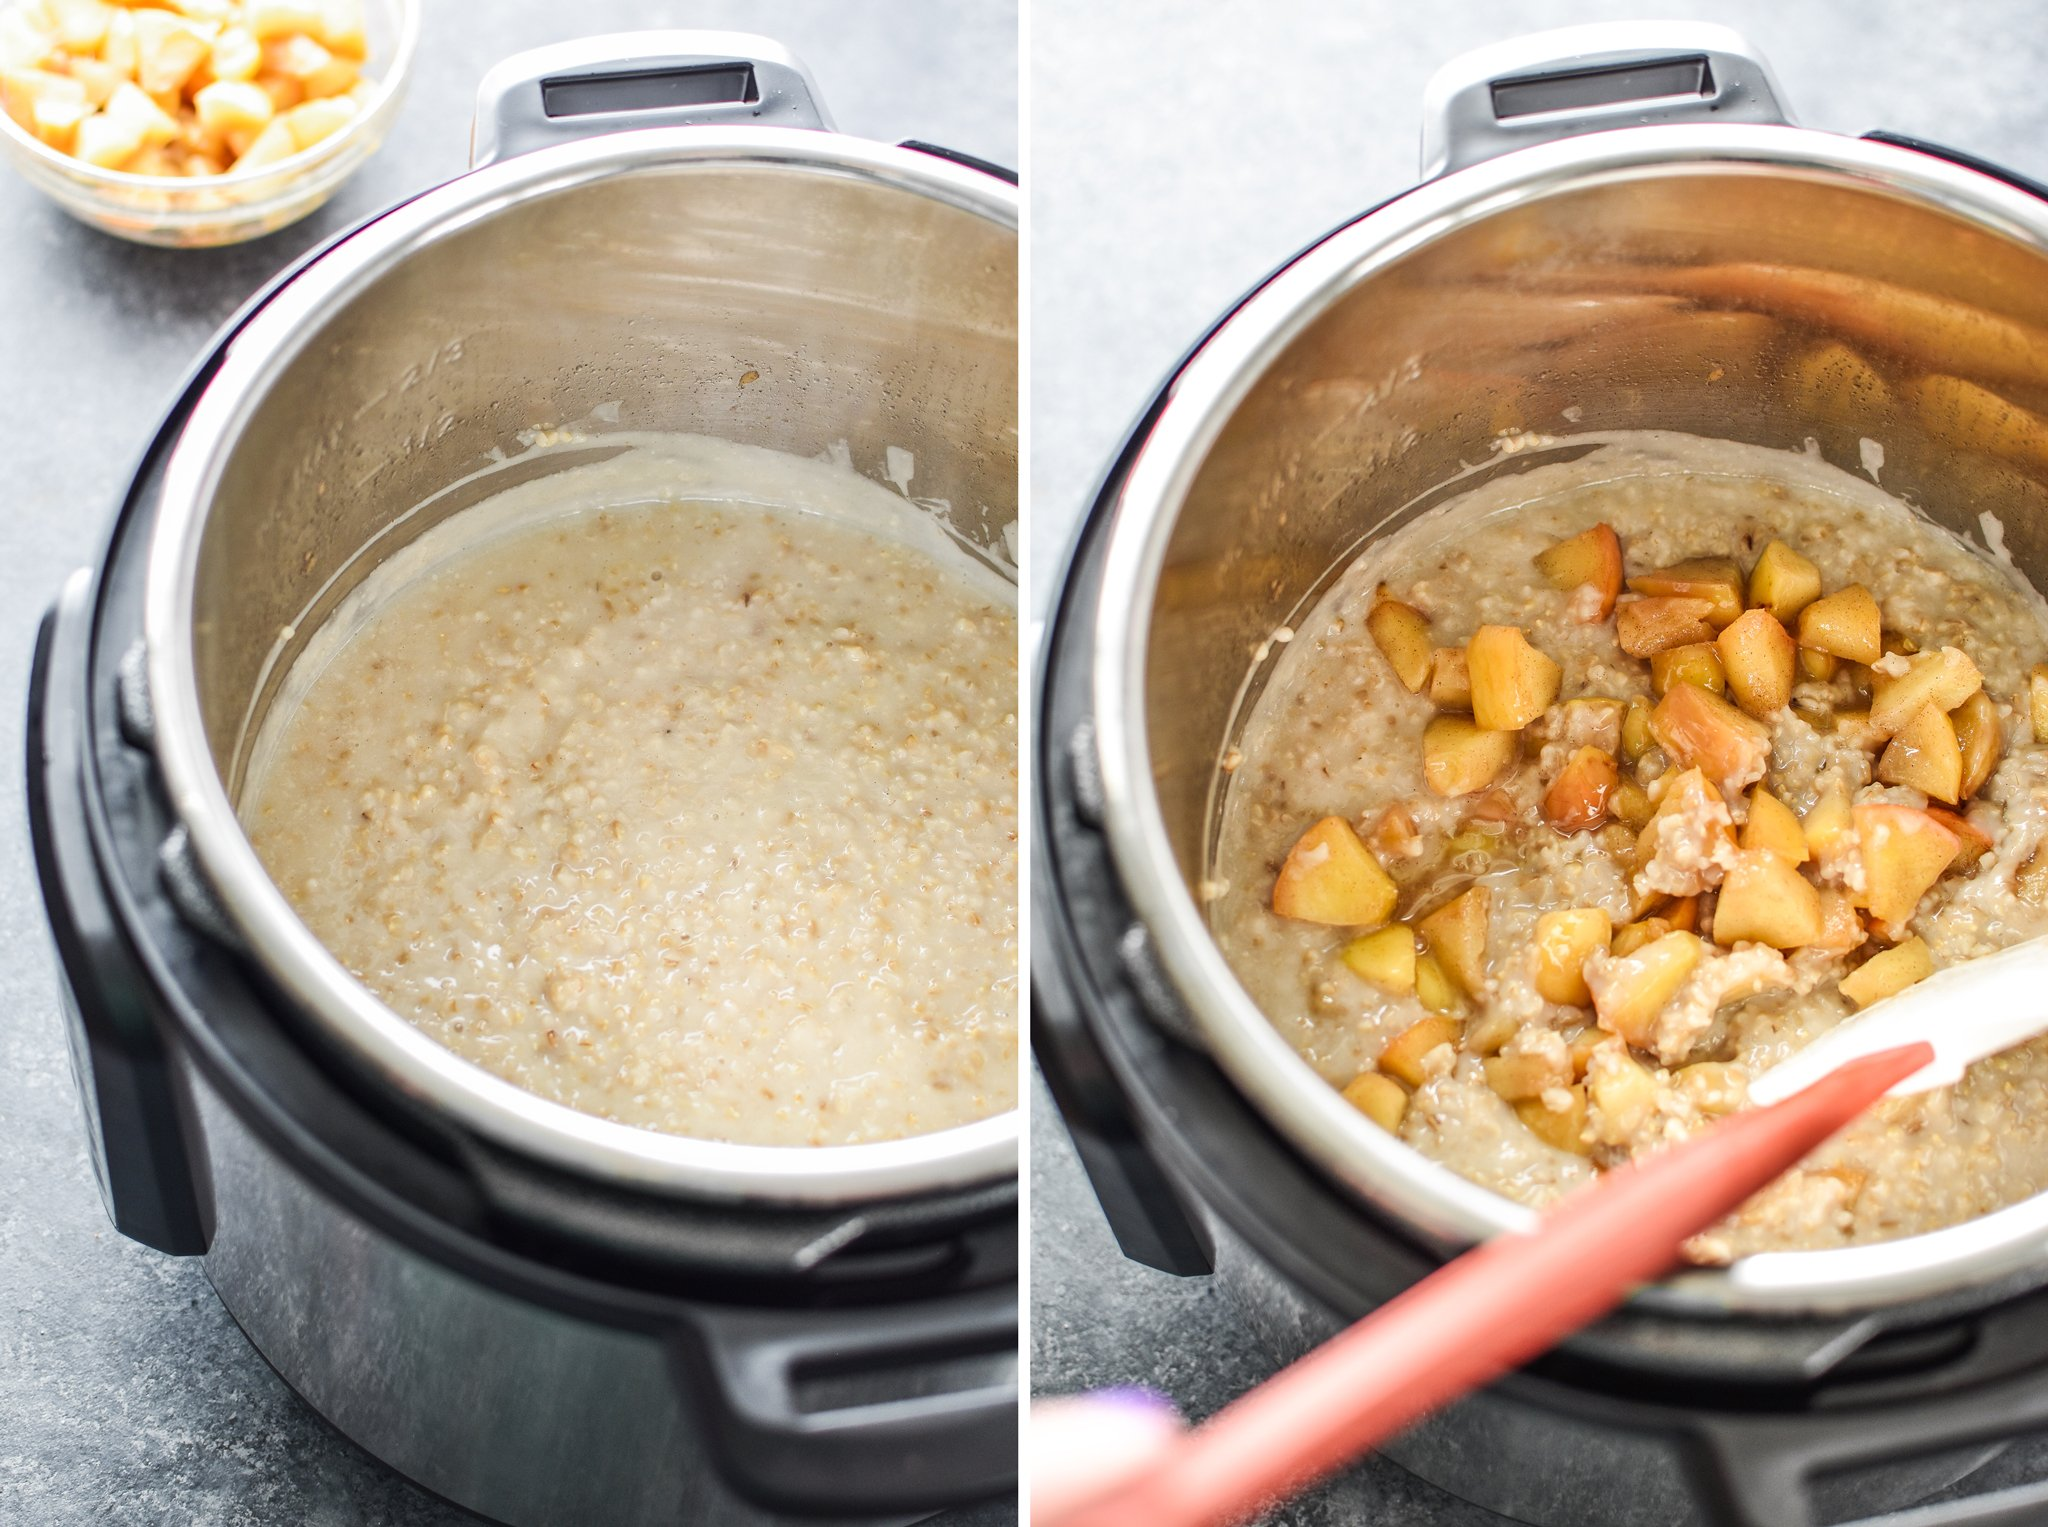 Making cinnamon apple steel cut oats in my Instant Pot - Here areThe First 25 Recipes I Made With My Instant Pot